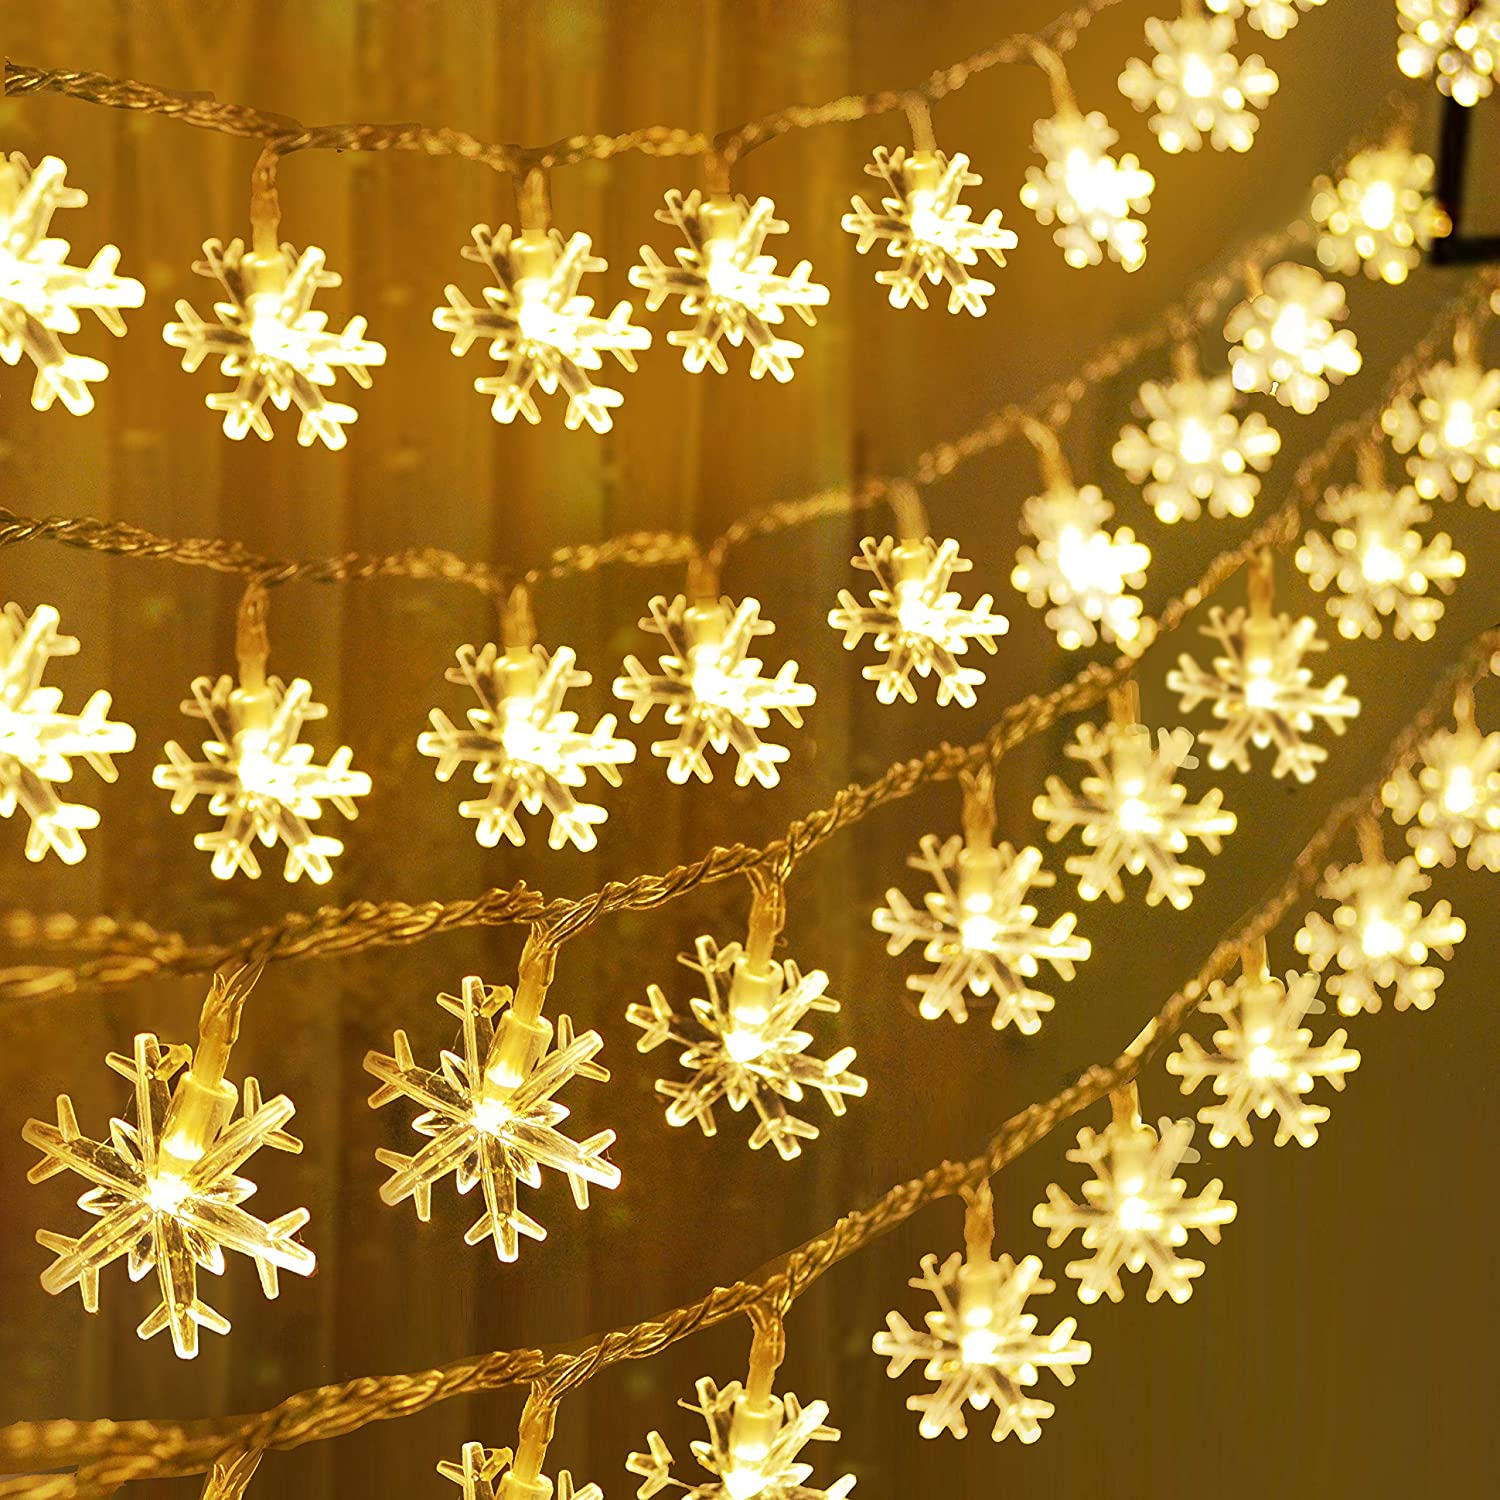 Joiedomi 2Packs Christmas Snowflake Fairy Lights 16ft 40 LED (Warm White) String Lights Battery Operated Waterproof for Xmas Home Party Wedding Garden Patio Bedroom Indoor Outdoor Decor